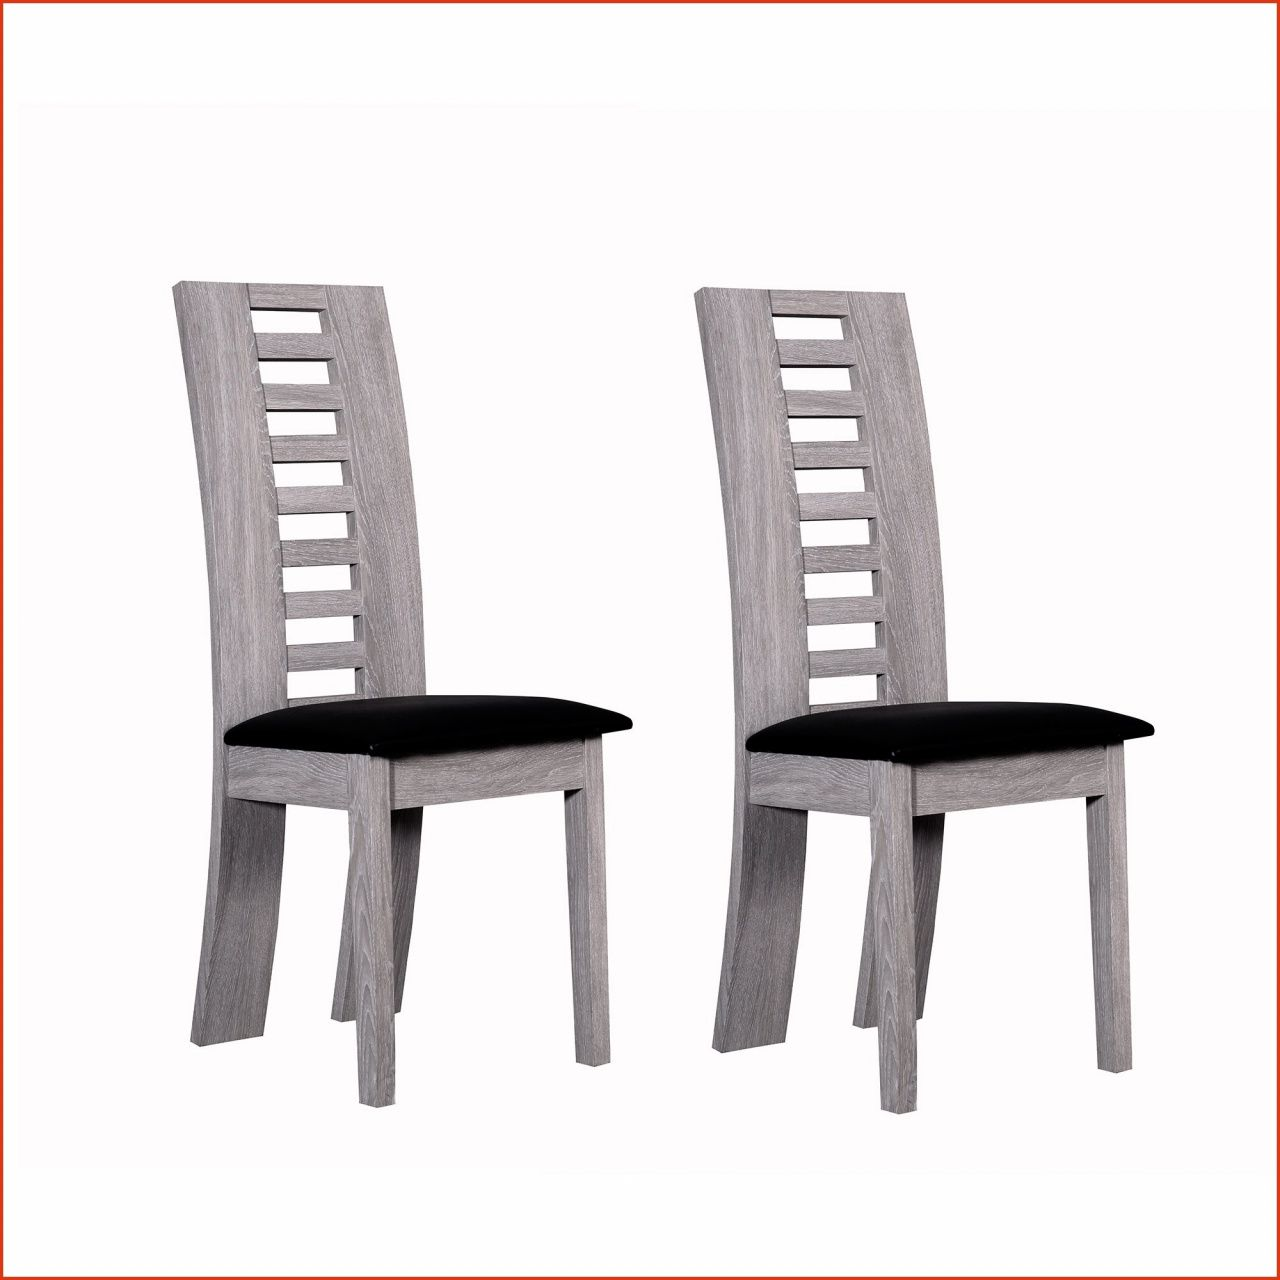 77 Chaises Salle A Manger But Dining Chairs Home Decor Home Deco